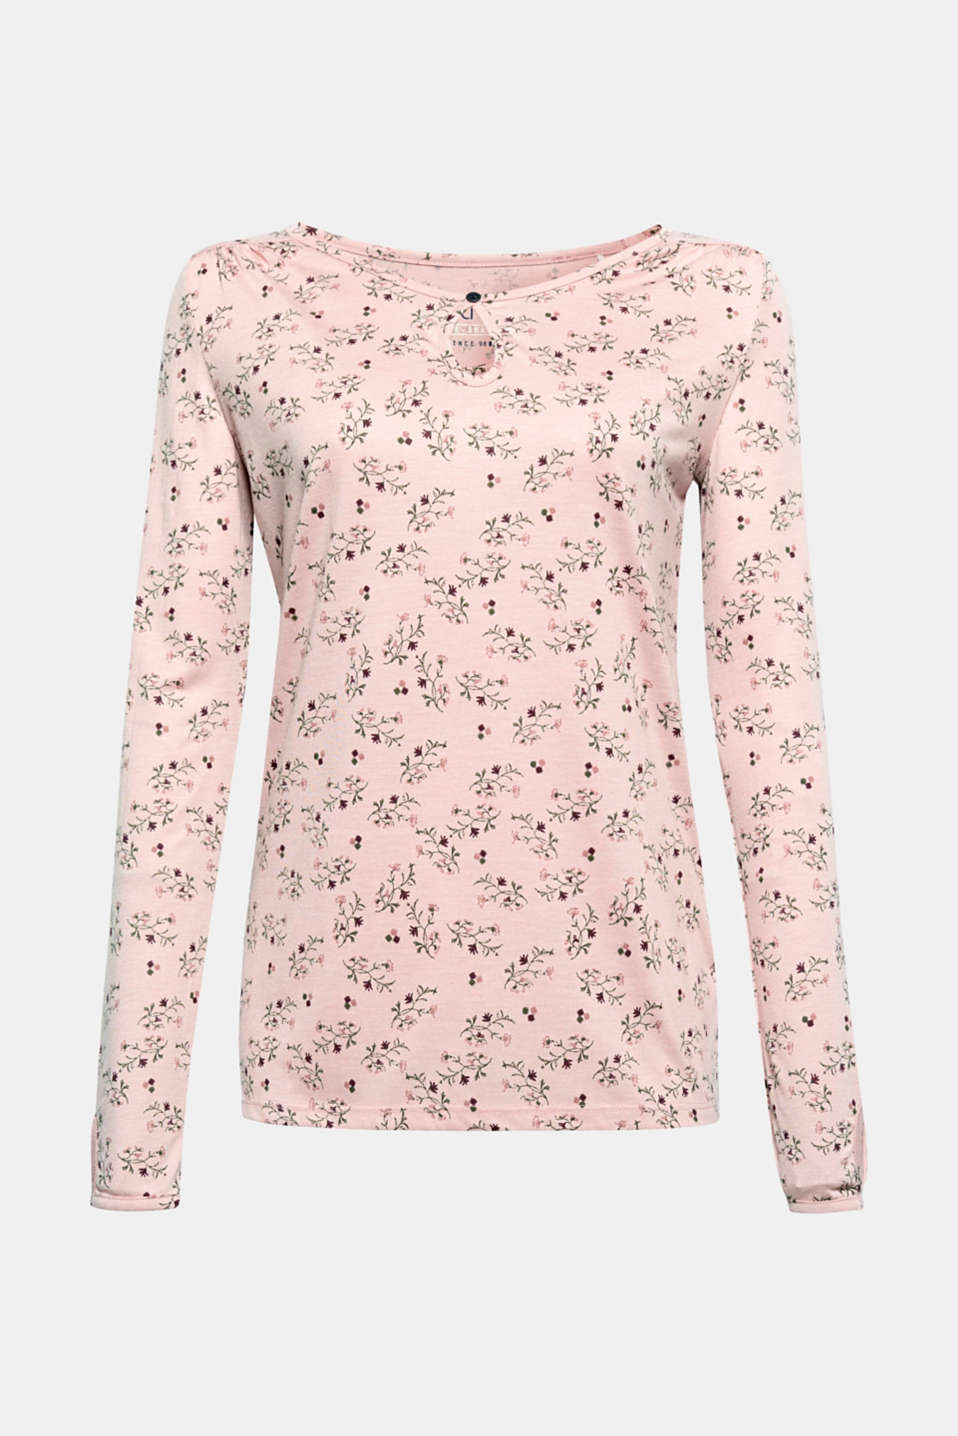 This feminine long sleeve top with a floral tendril print is a versatile all-round talent.